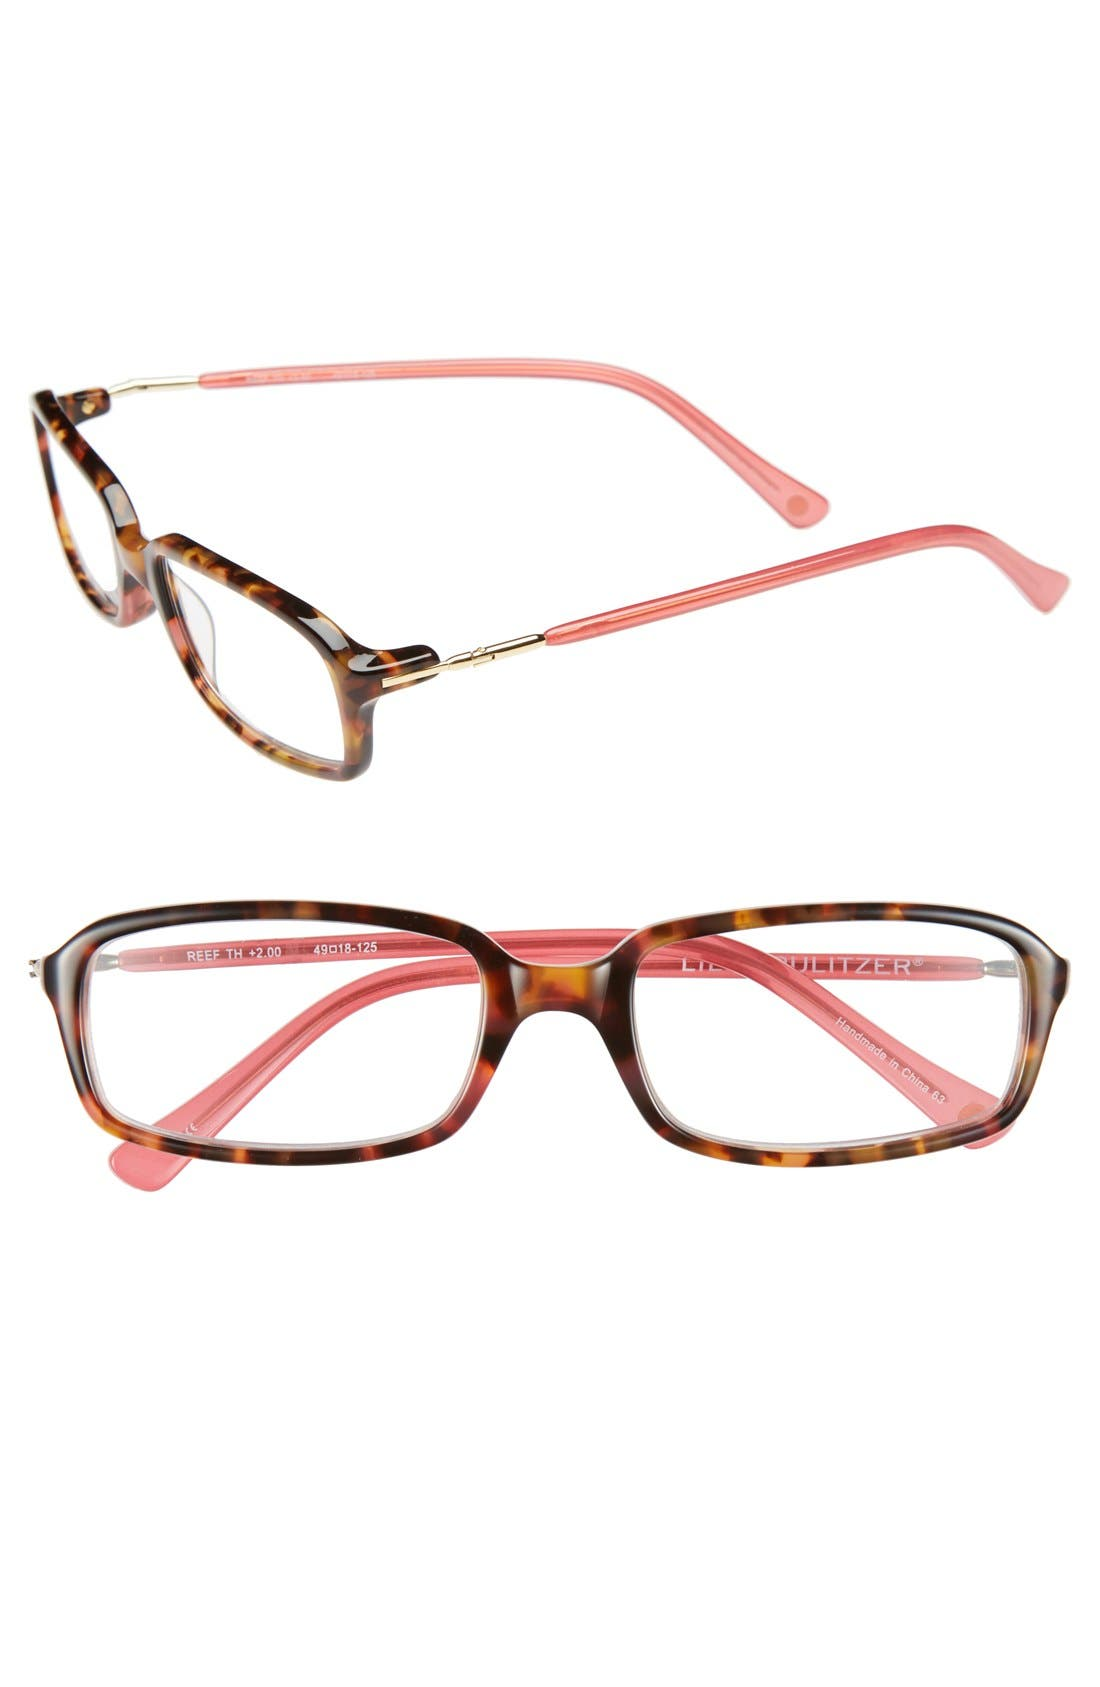 Main Image - Lilly Pulitzer® 'Reef' 49mm Reading Glasses